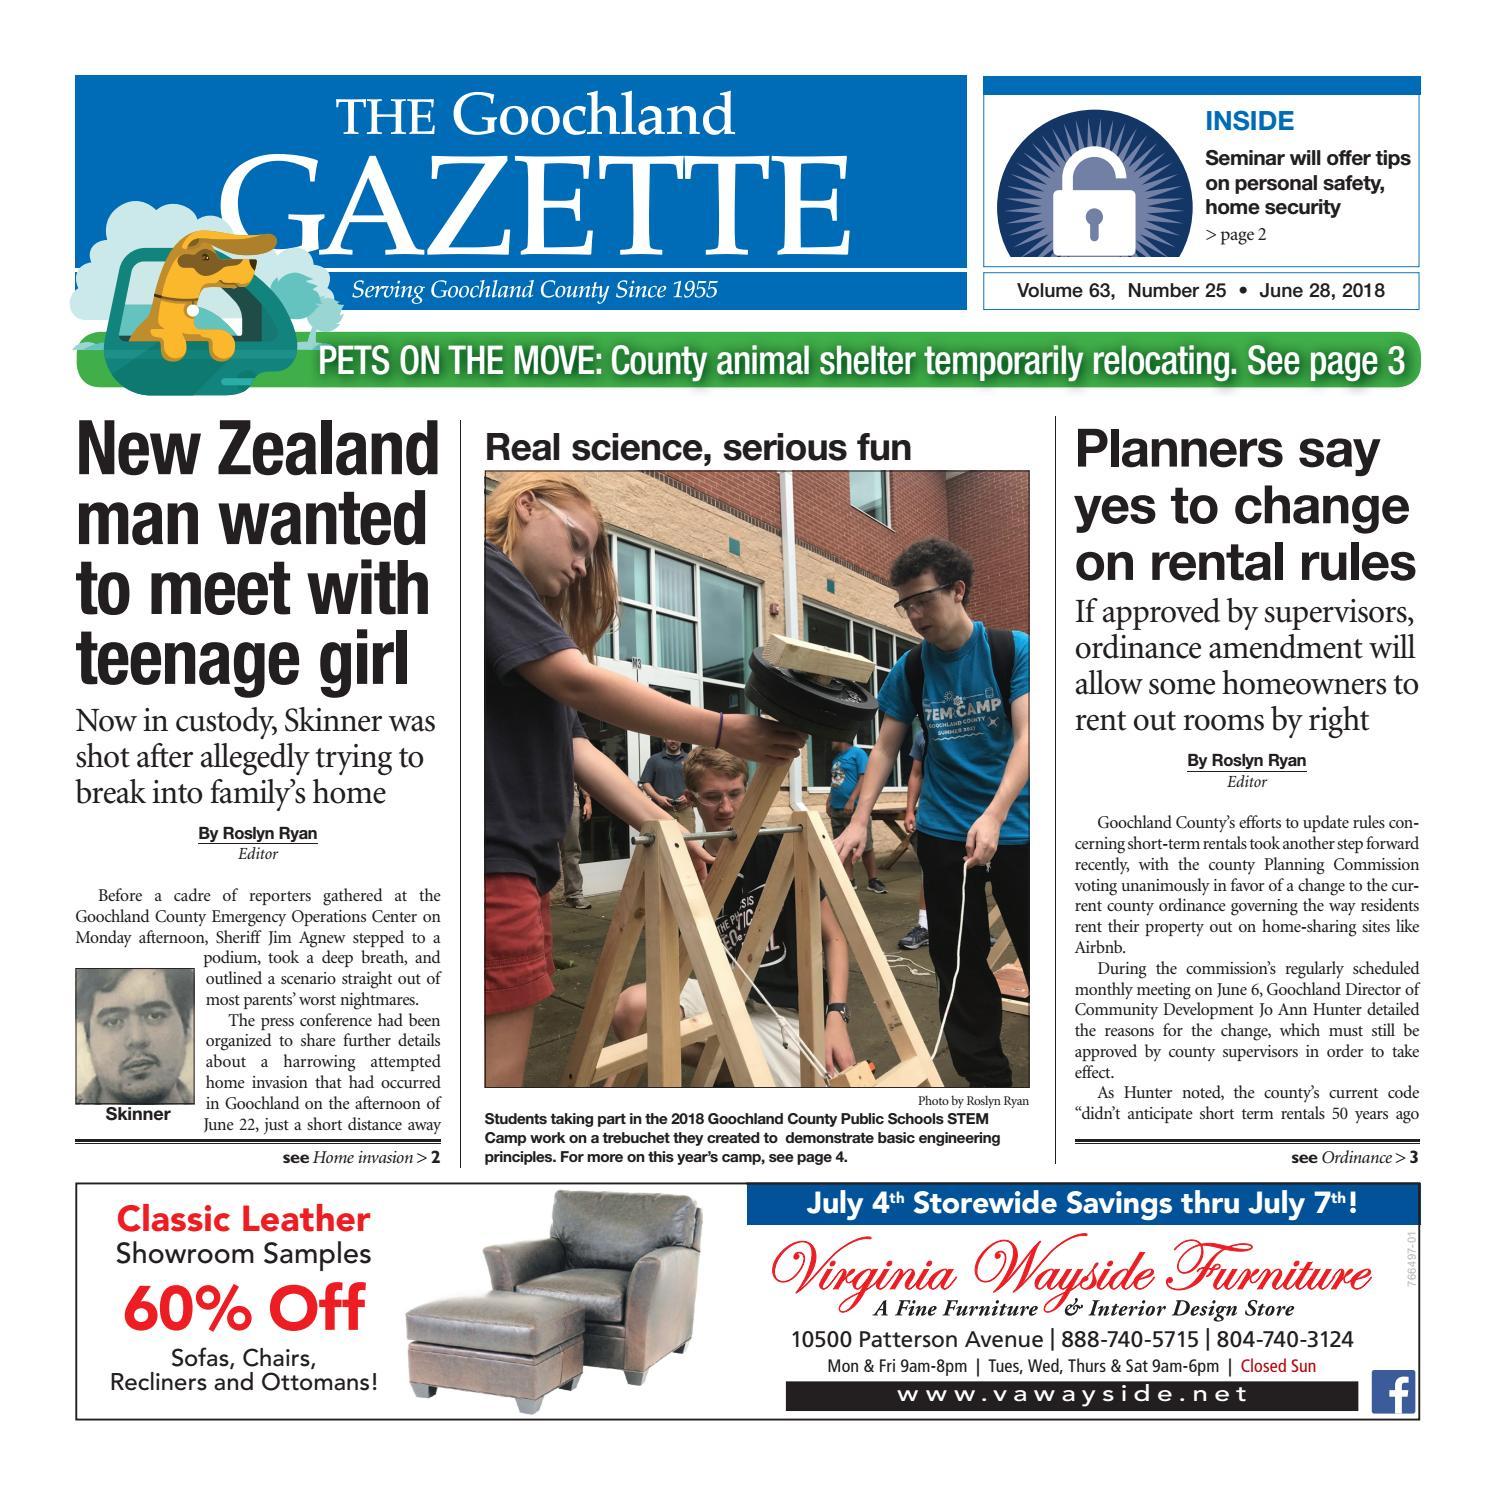 The Goochland Gazette 06 28 2018 By Goochland Gazette Issuu